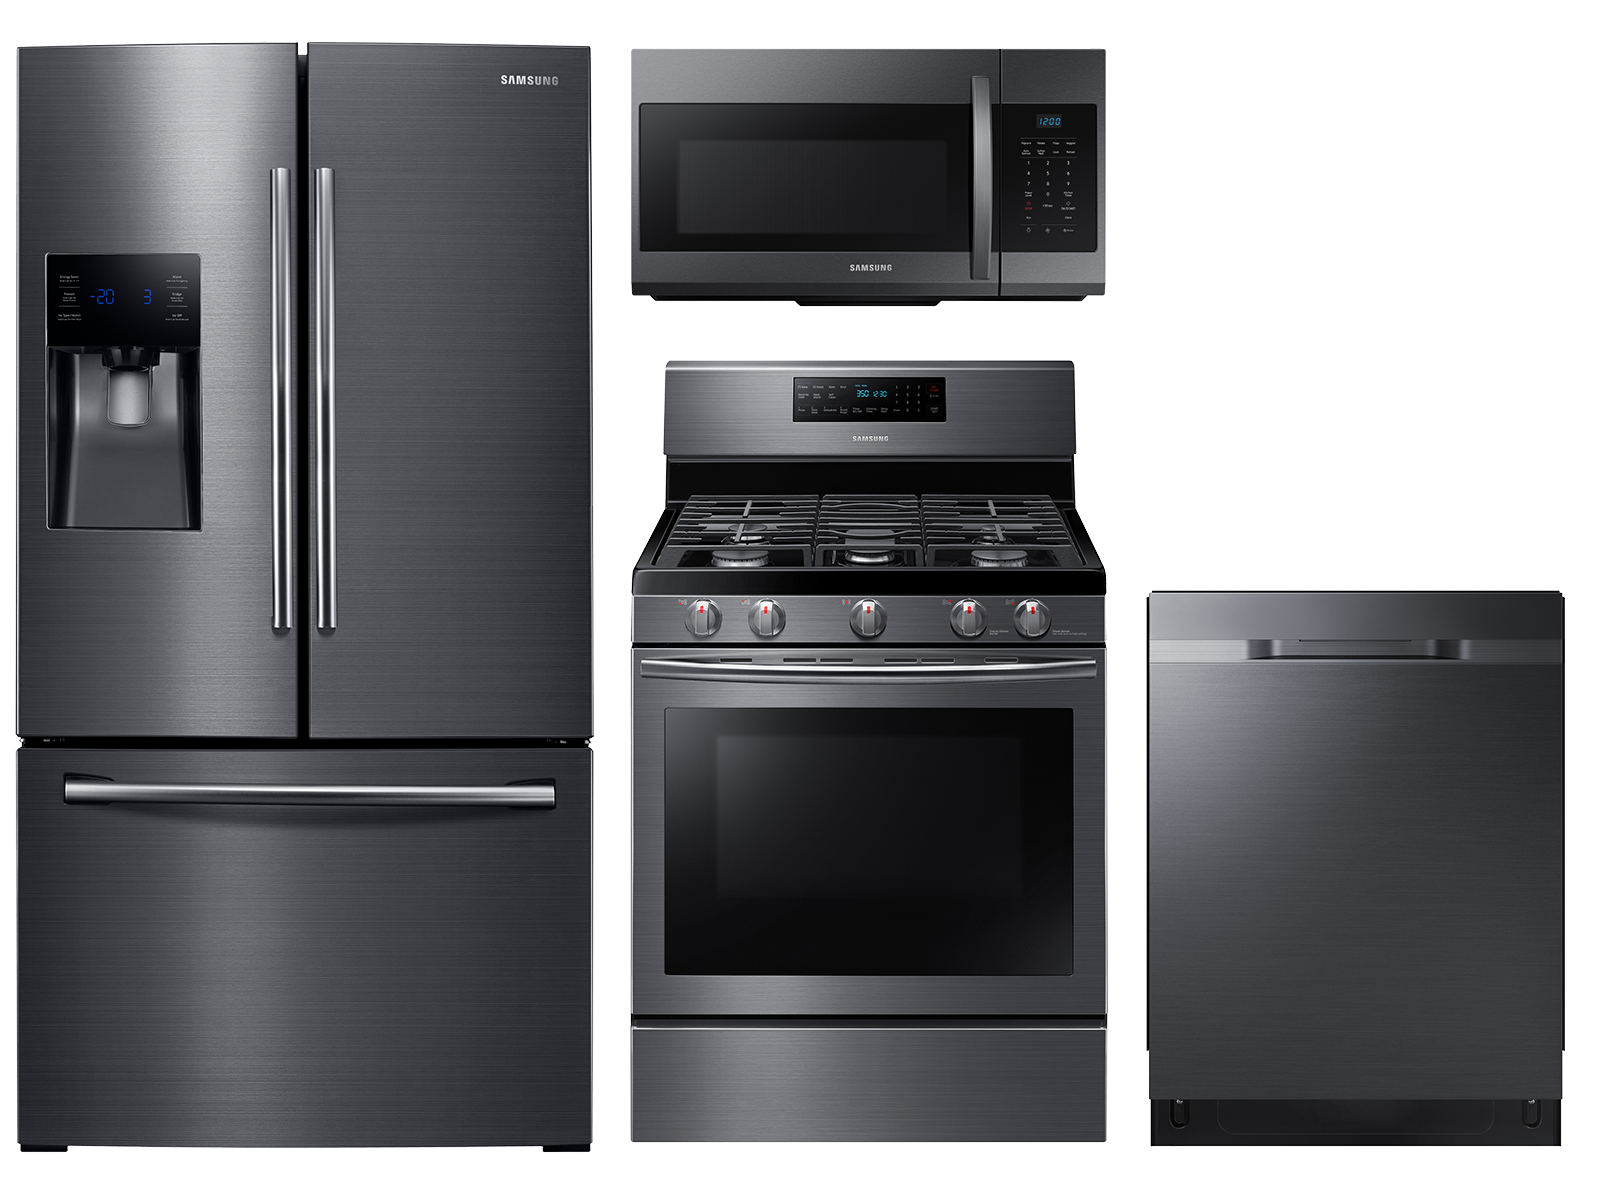 Samsung 3-door Refrigerator with Family Hub + Gas Range + StormWash Dishwasher + Microwave Kitchen Package in Black Stainless